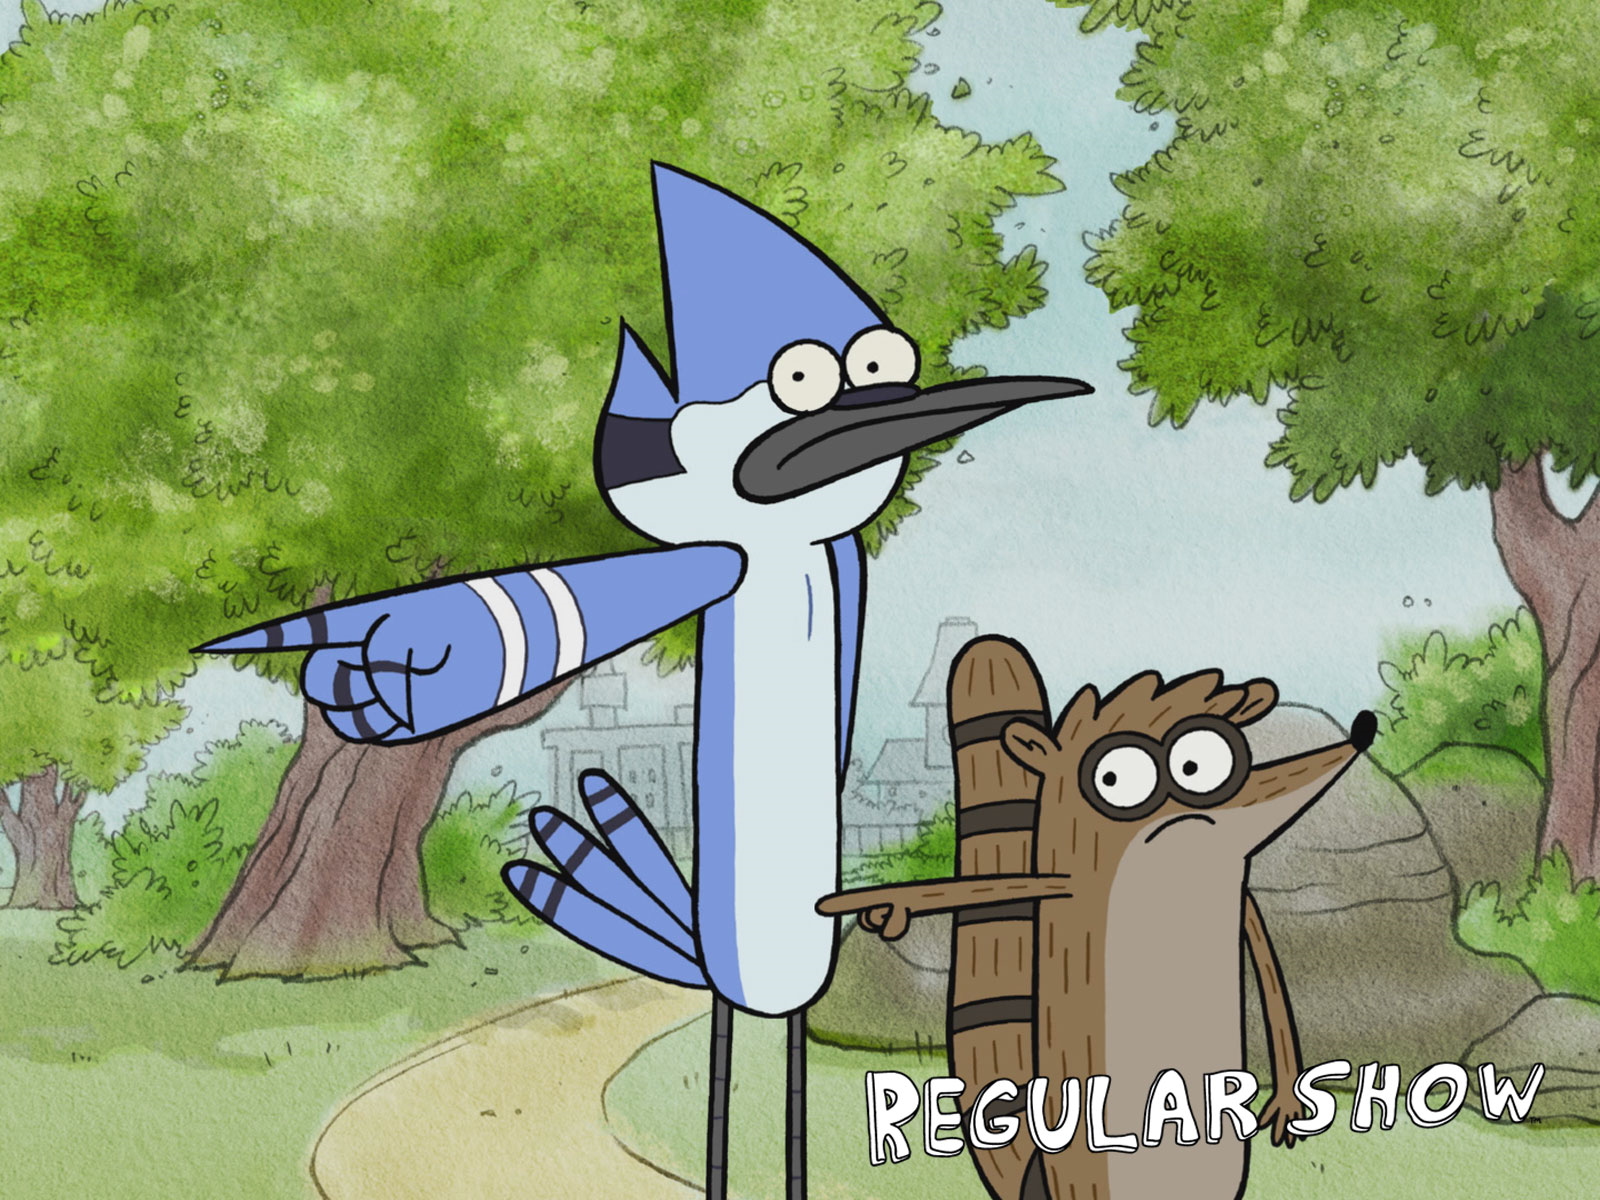 Wallpaper Regular Show Episode The Power Rigby Cartoon Shows Network